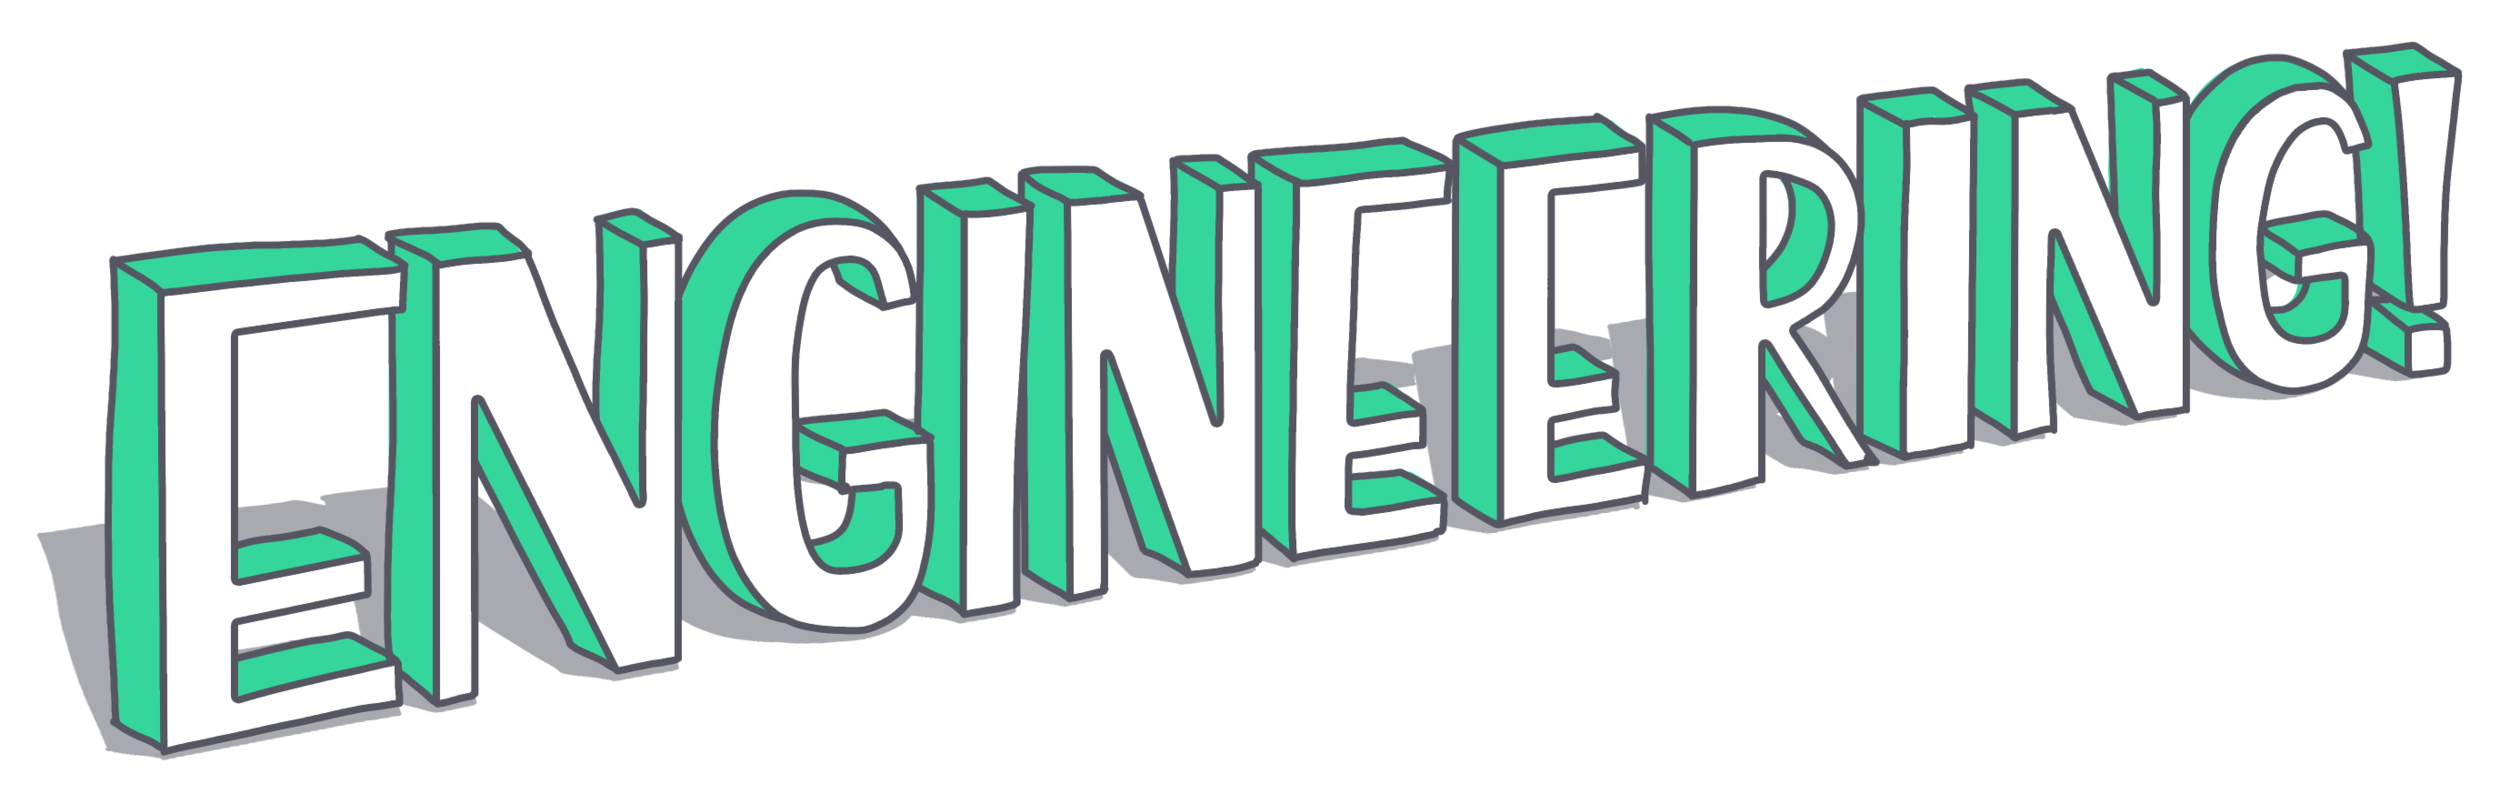 engineering title image.png